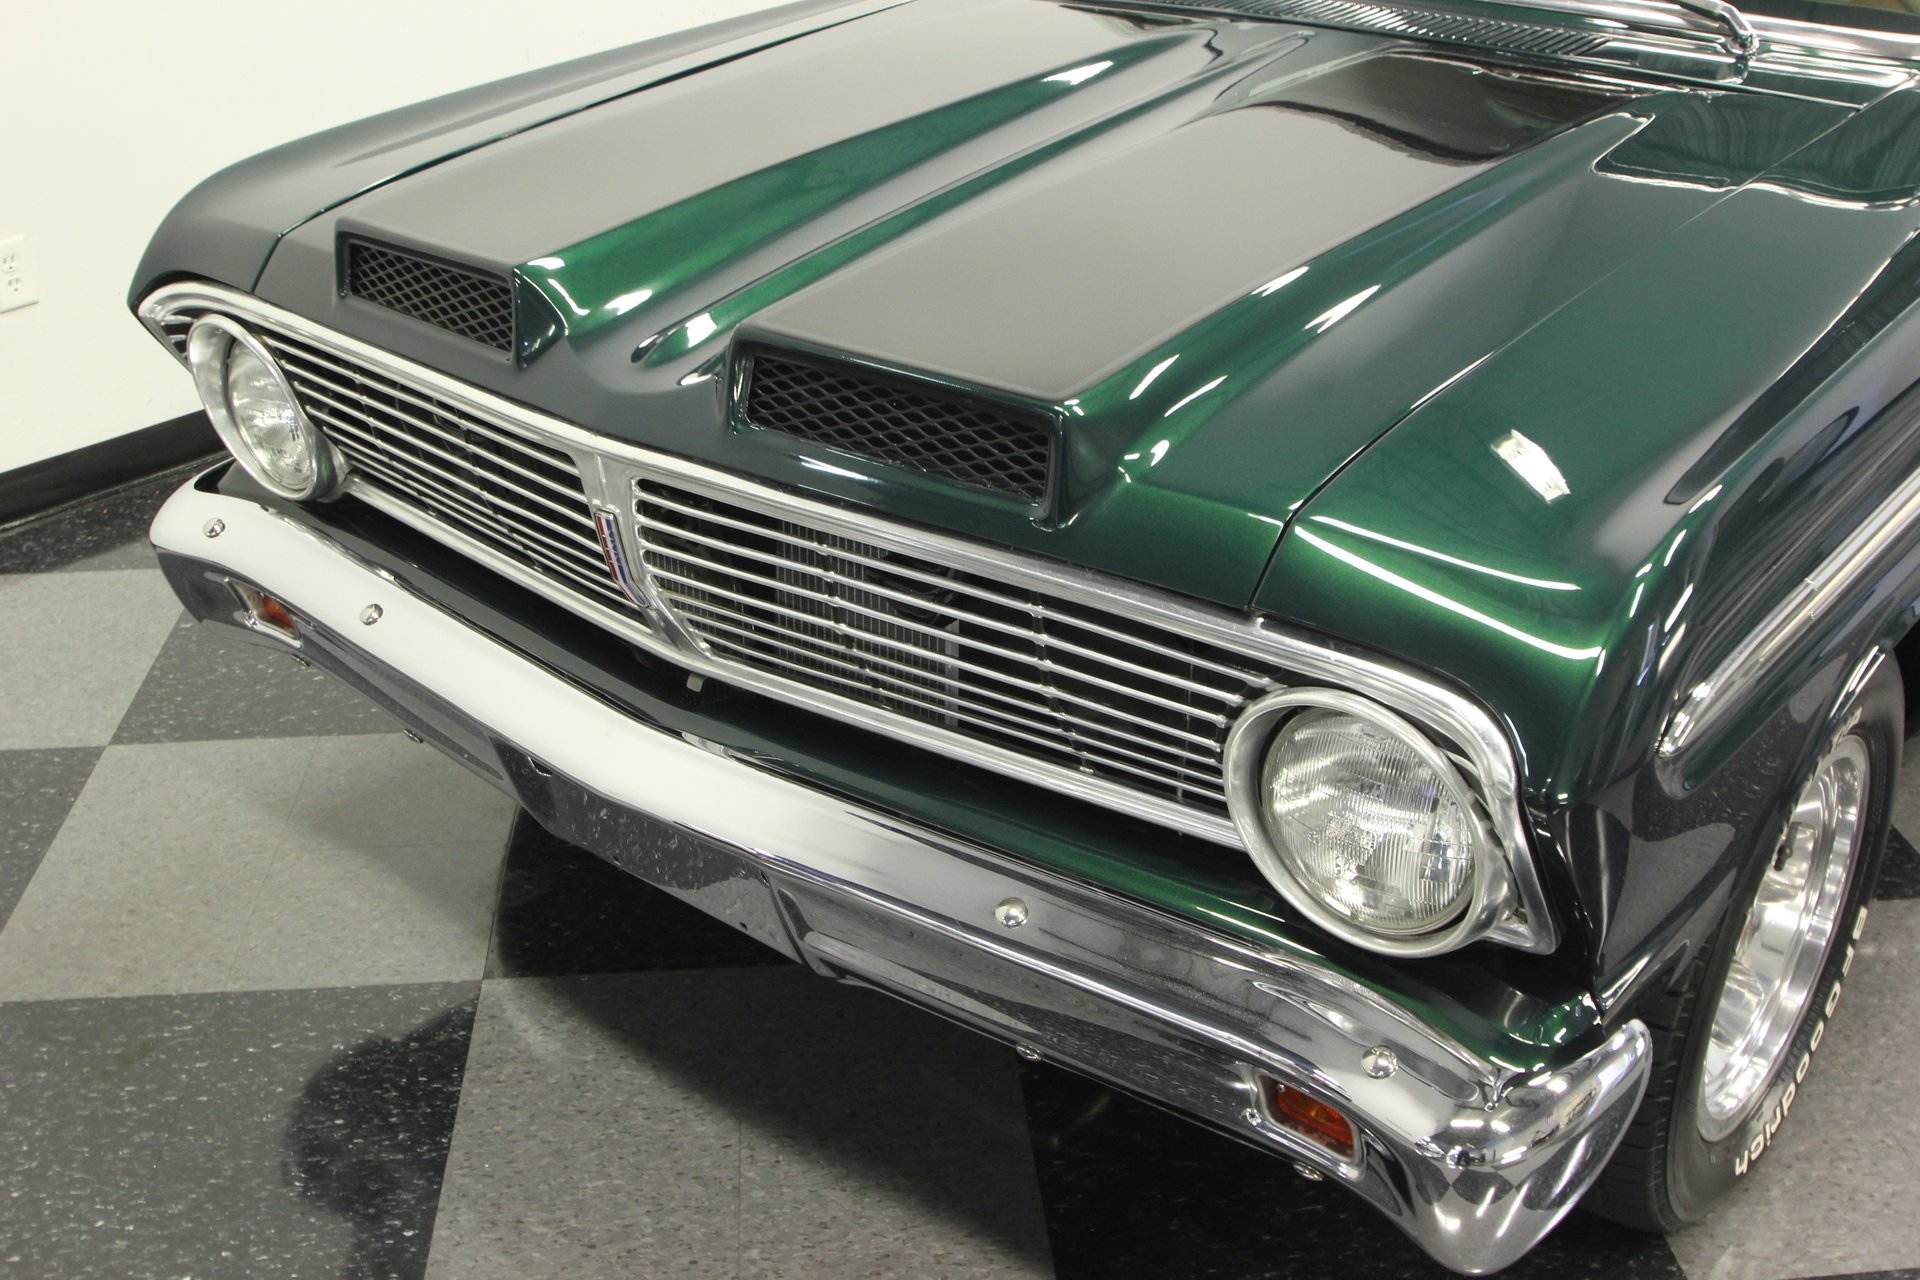 1965 Ford Falcon Streetside Classics The Nations Trusted